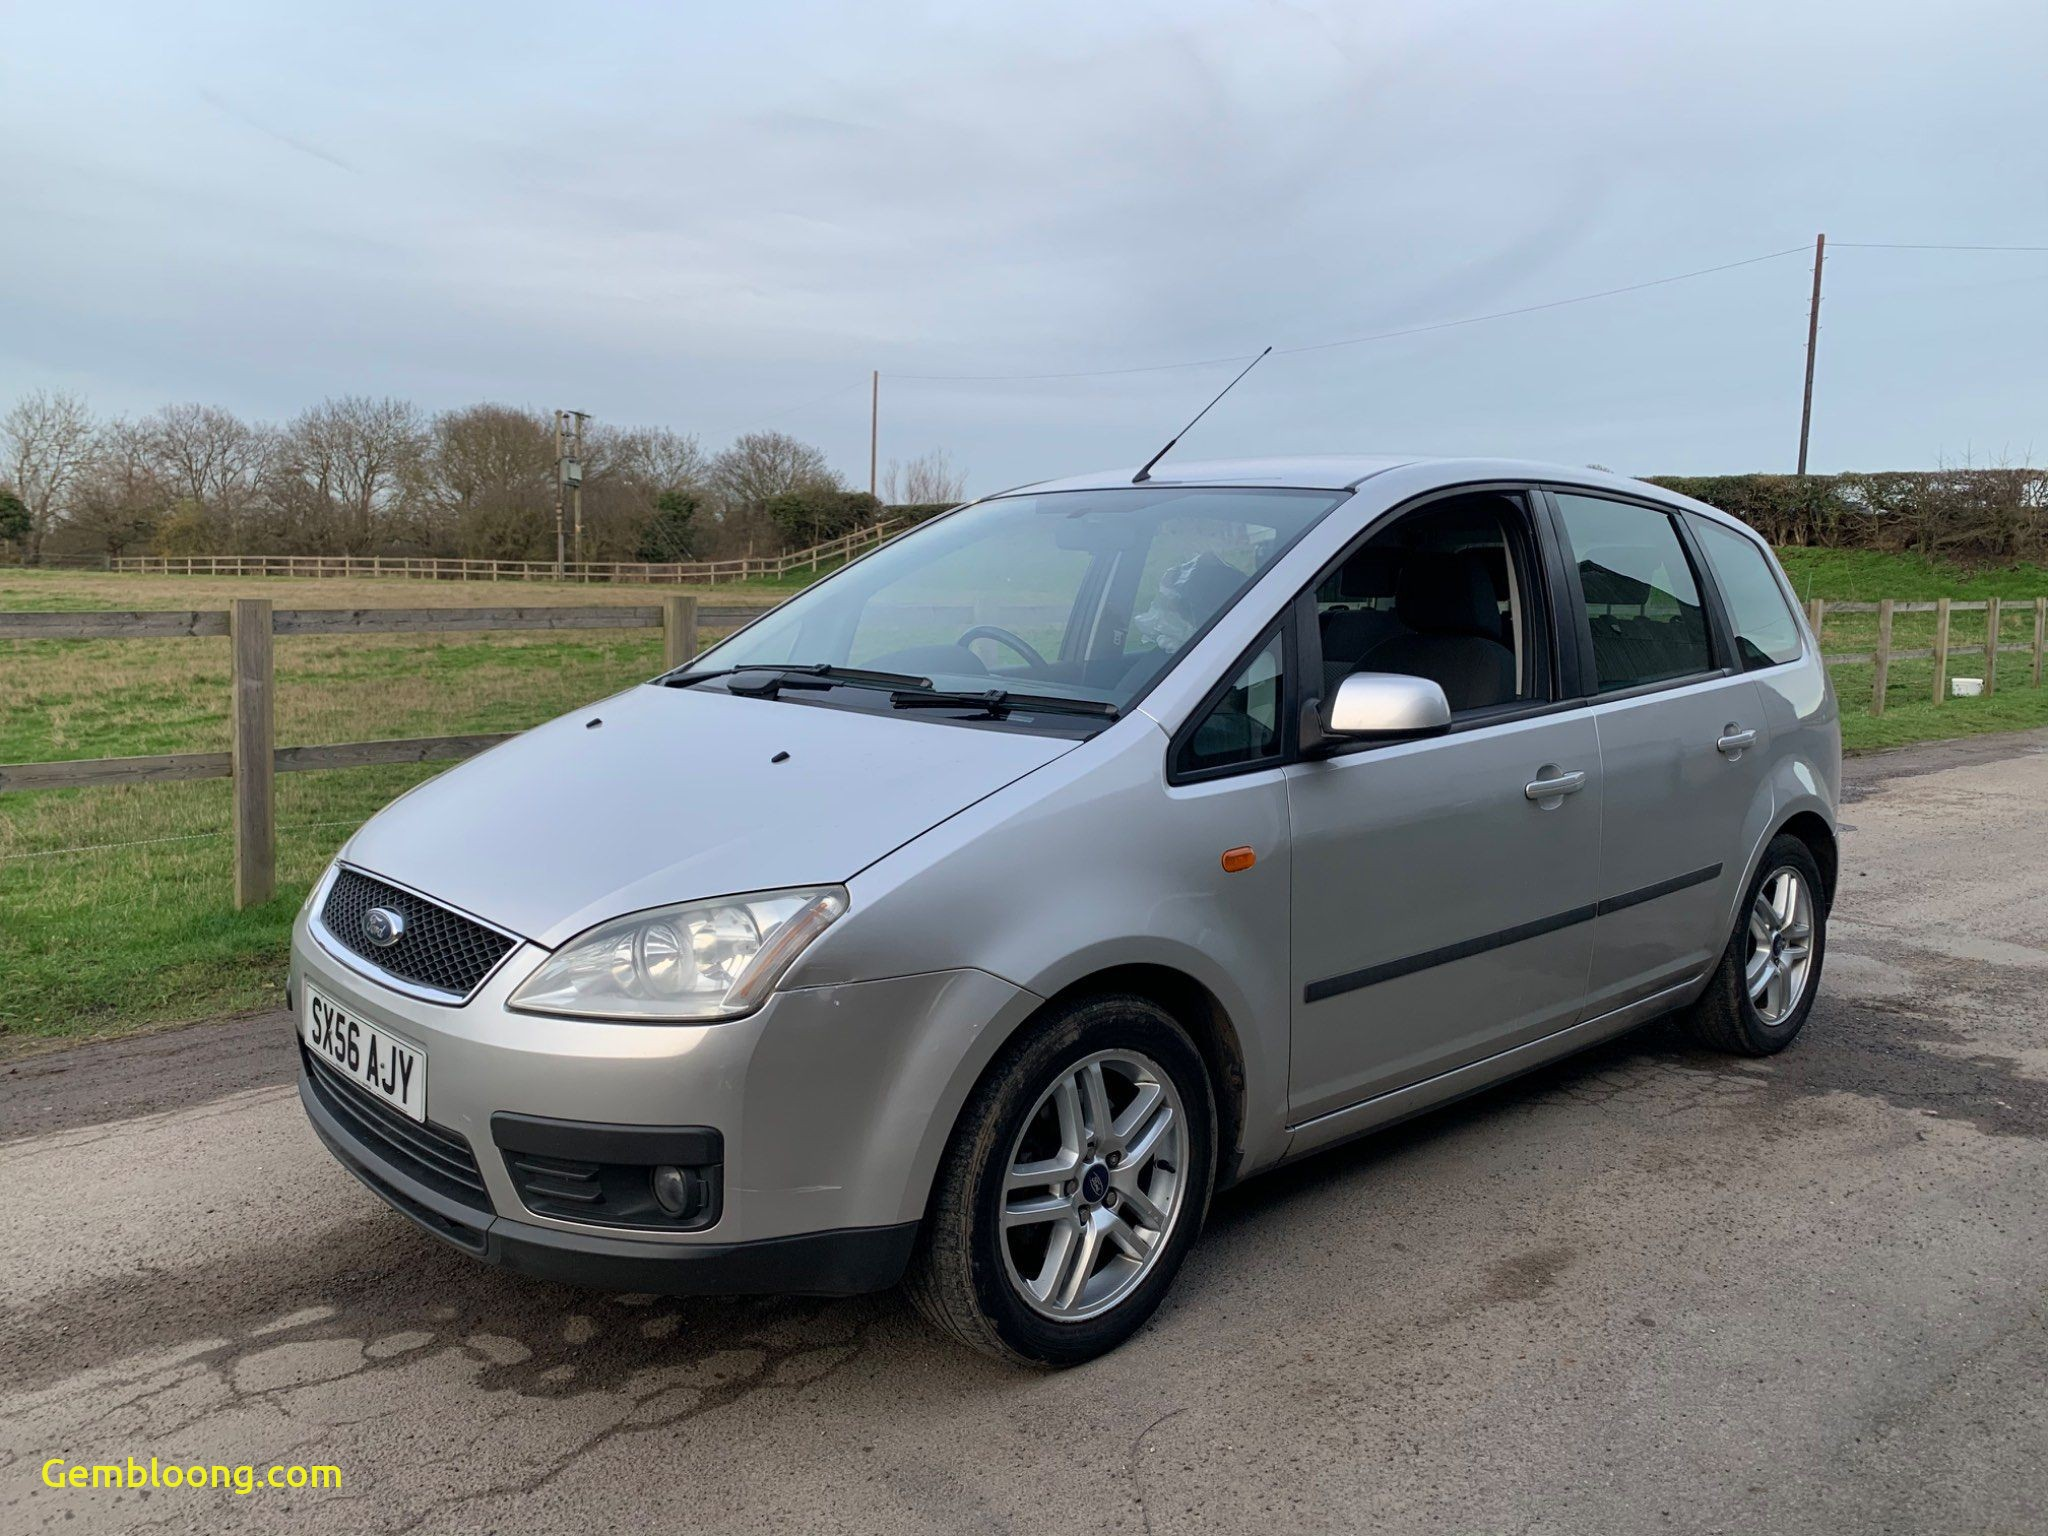 Cars for Sale Near Me 2000 and Under New Cheap Cars Under £3 000 for Sale On Auto Trader Uk